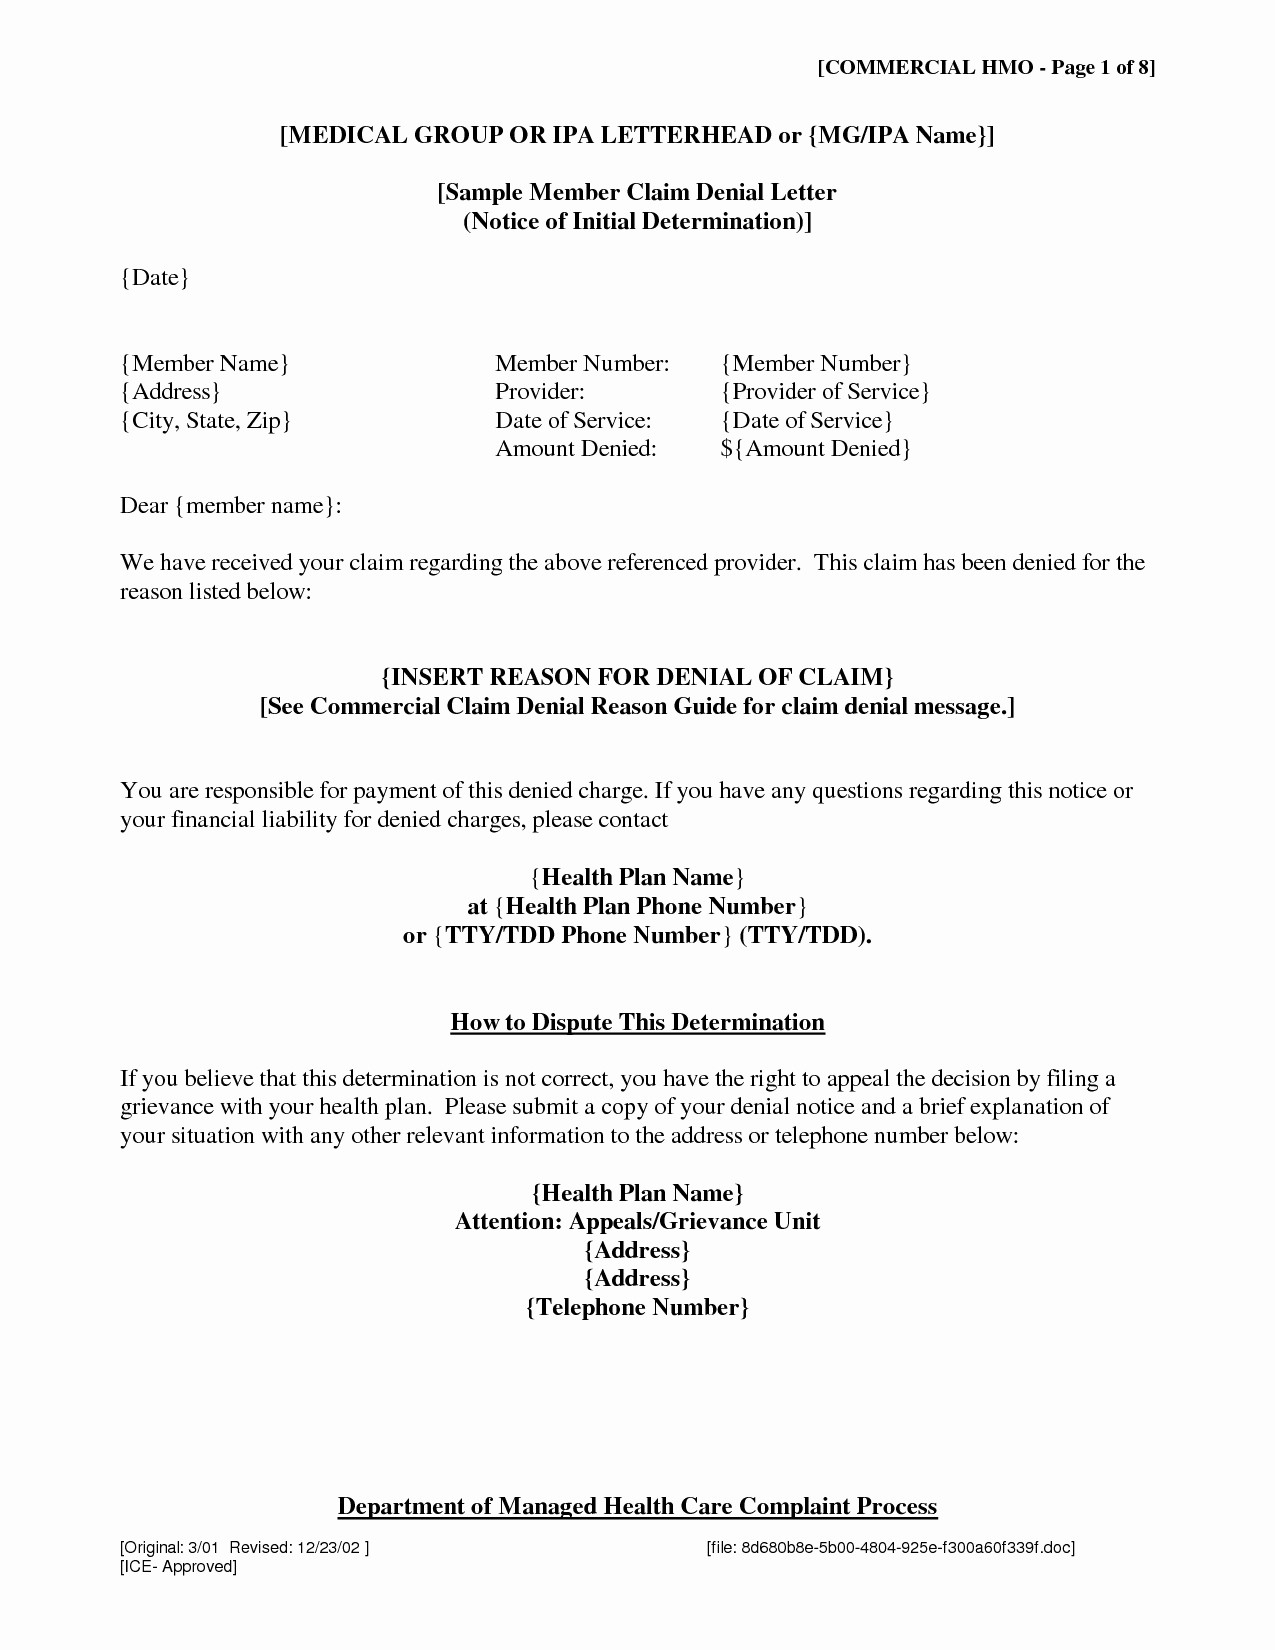 insurance denial letter template example-Letter Template for Ppi Claim Copy Gallery Title Insurance Claim Letter Sample Fresh Insurance Claim 5-s